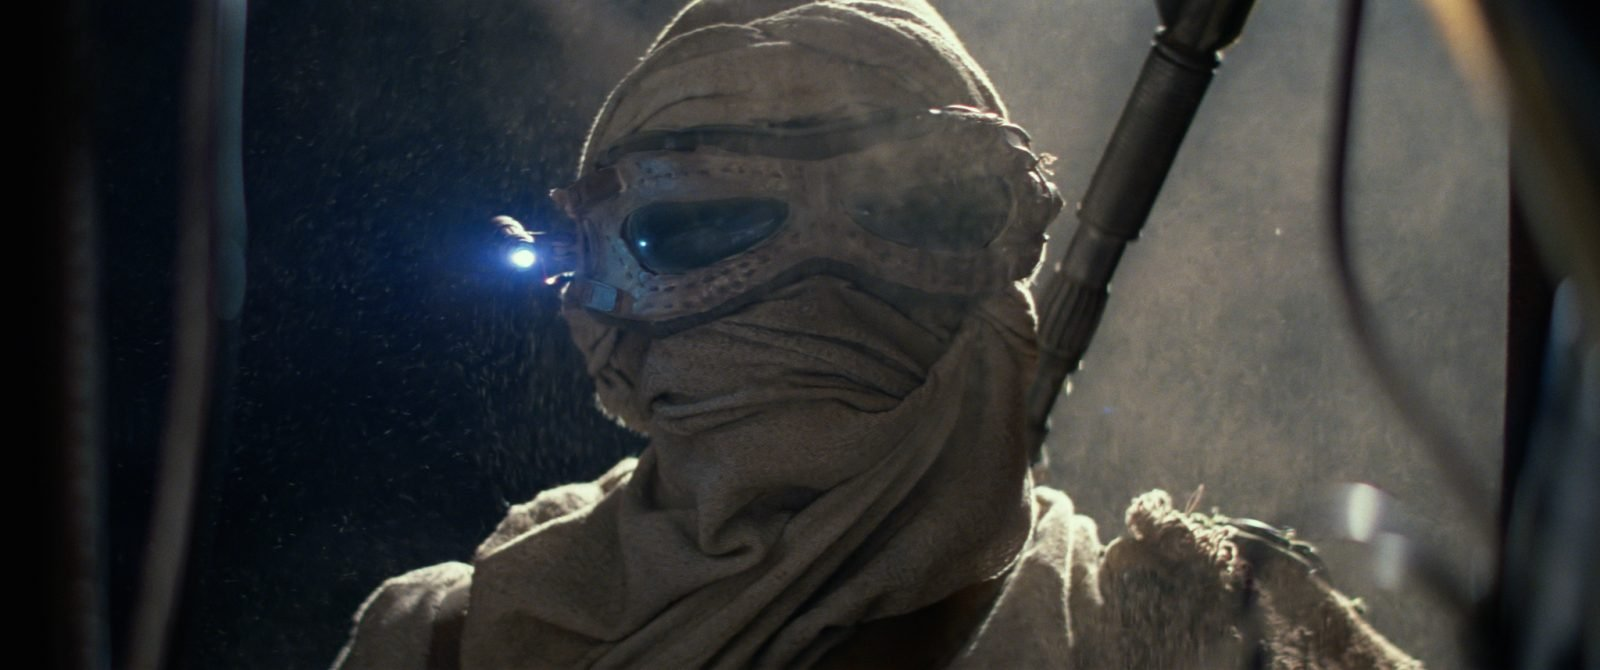 Star Wars VII The Force Awakens 1 - Rey Skywalker with Eyewear